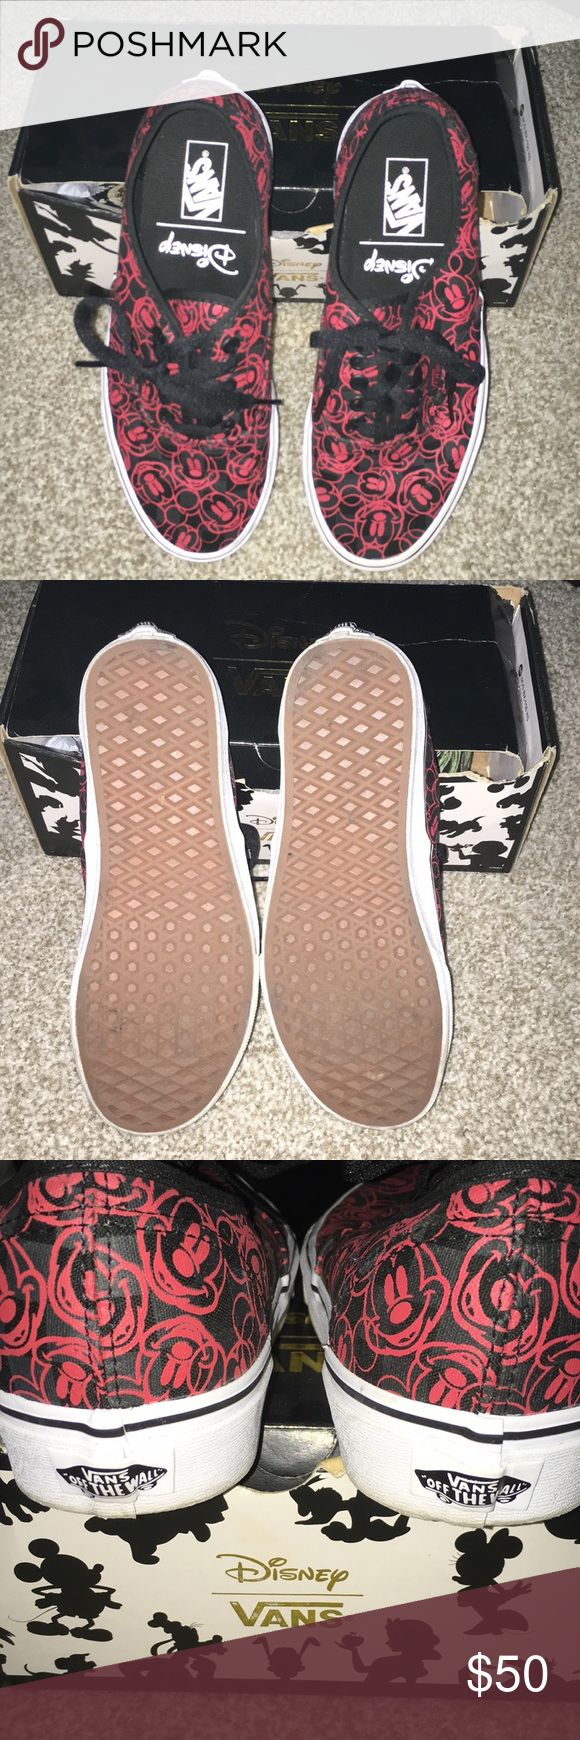 Vans Disney Collection Mickey Barely used. Like new condition. Size is 6.5 Mens / 8 women's. Please note that box will NOT be included. Any questions please ask. I am open for offers! Vans Shoes Ankle Boots & Booties